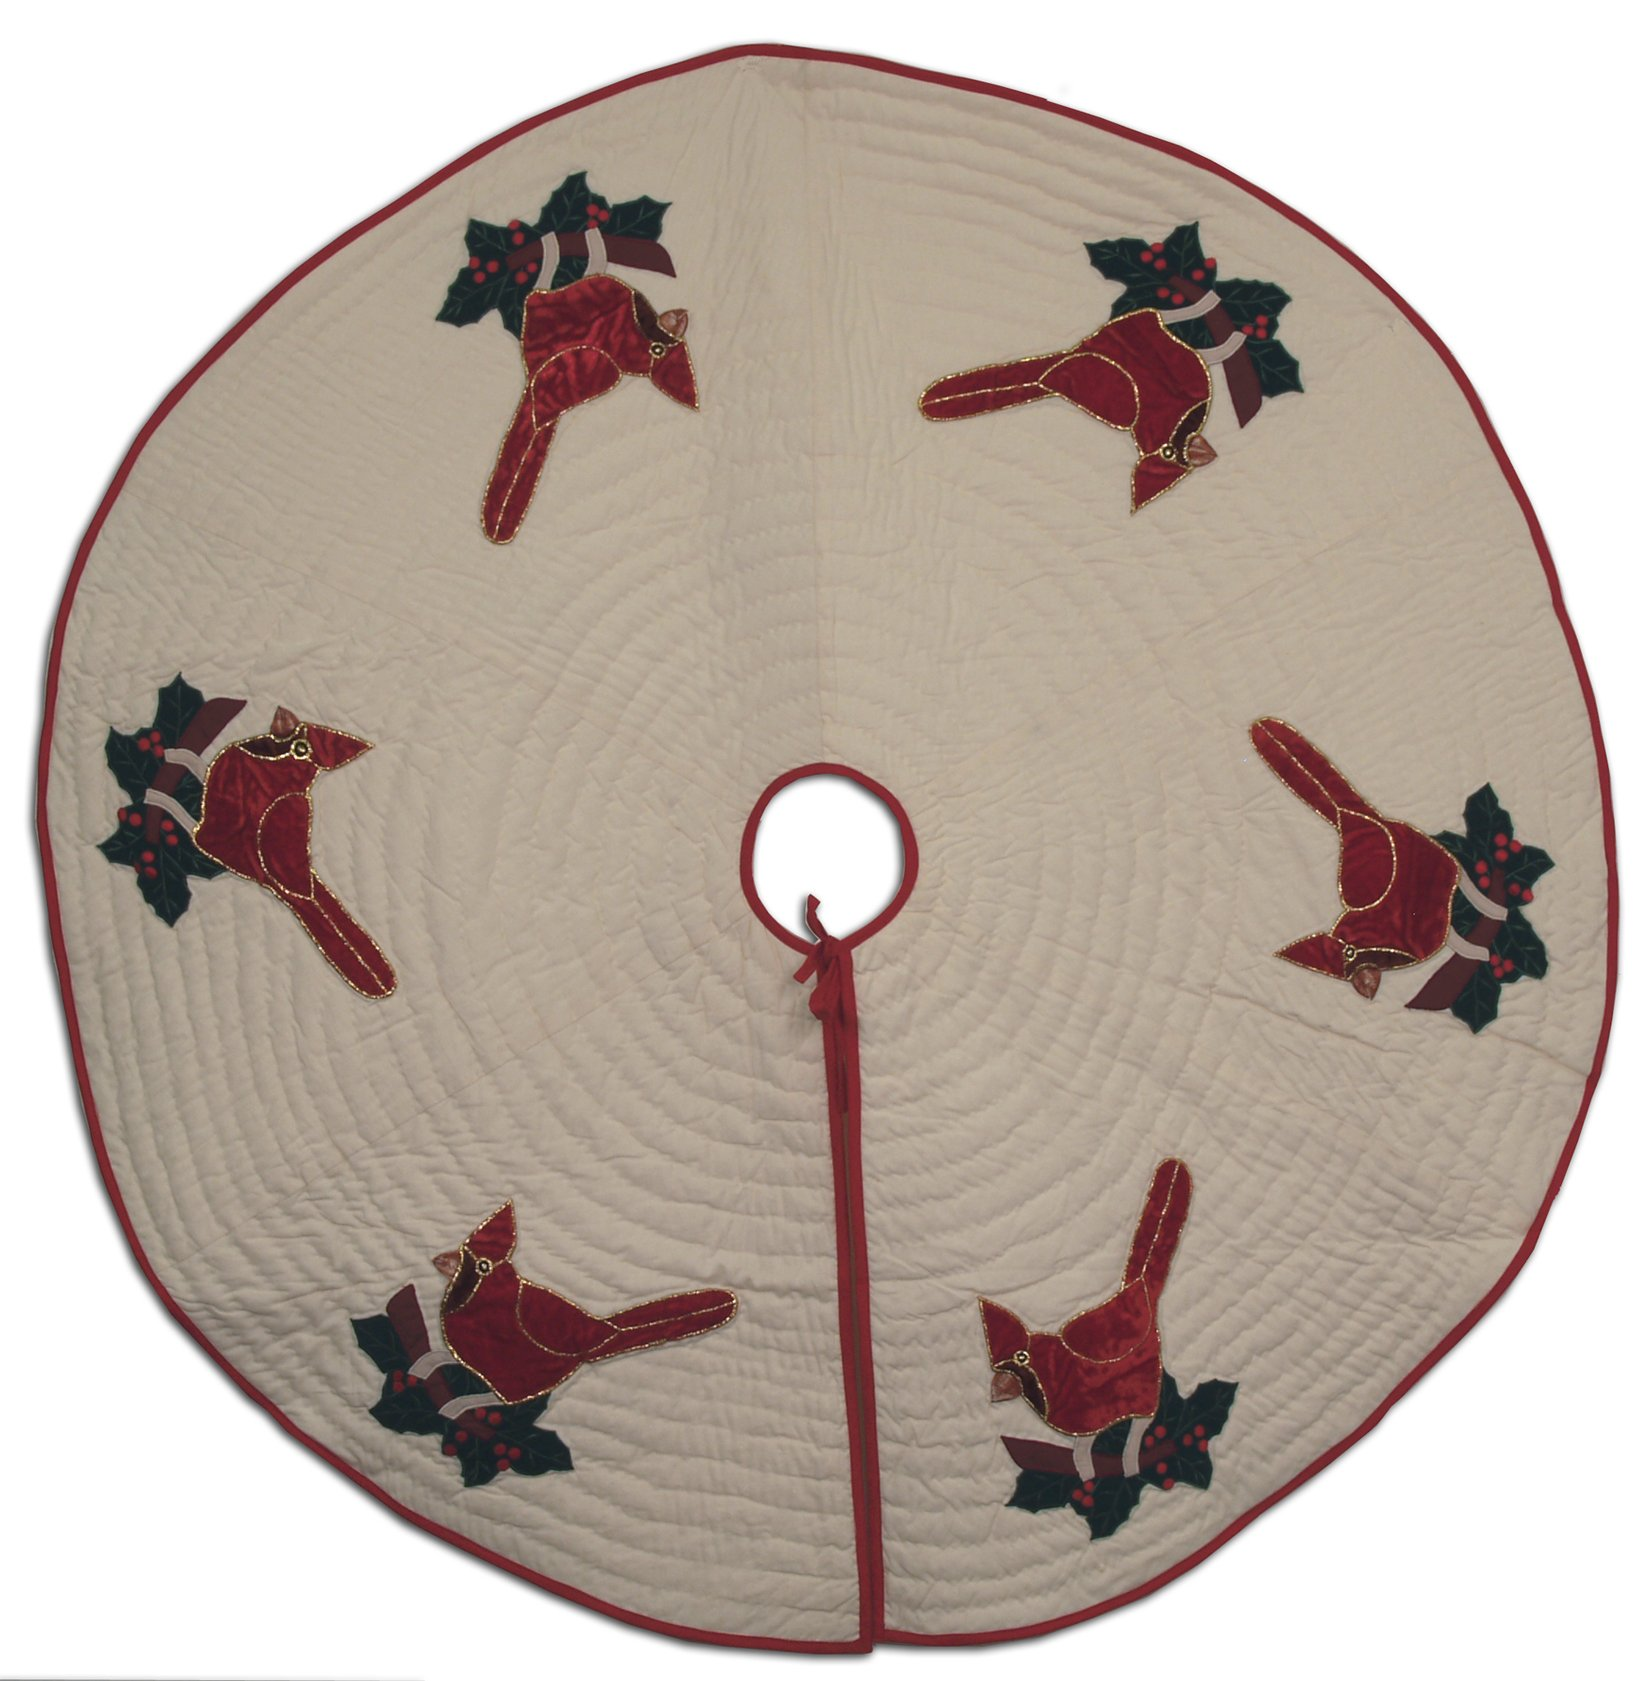 Velvet Cardinals Appliqued on 100% Cotton Off-White fabric Quilted Christmas Tree Skirt 45'' Round Handmade Hand Quilted Heirloom Quality